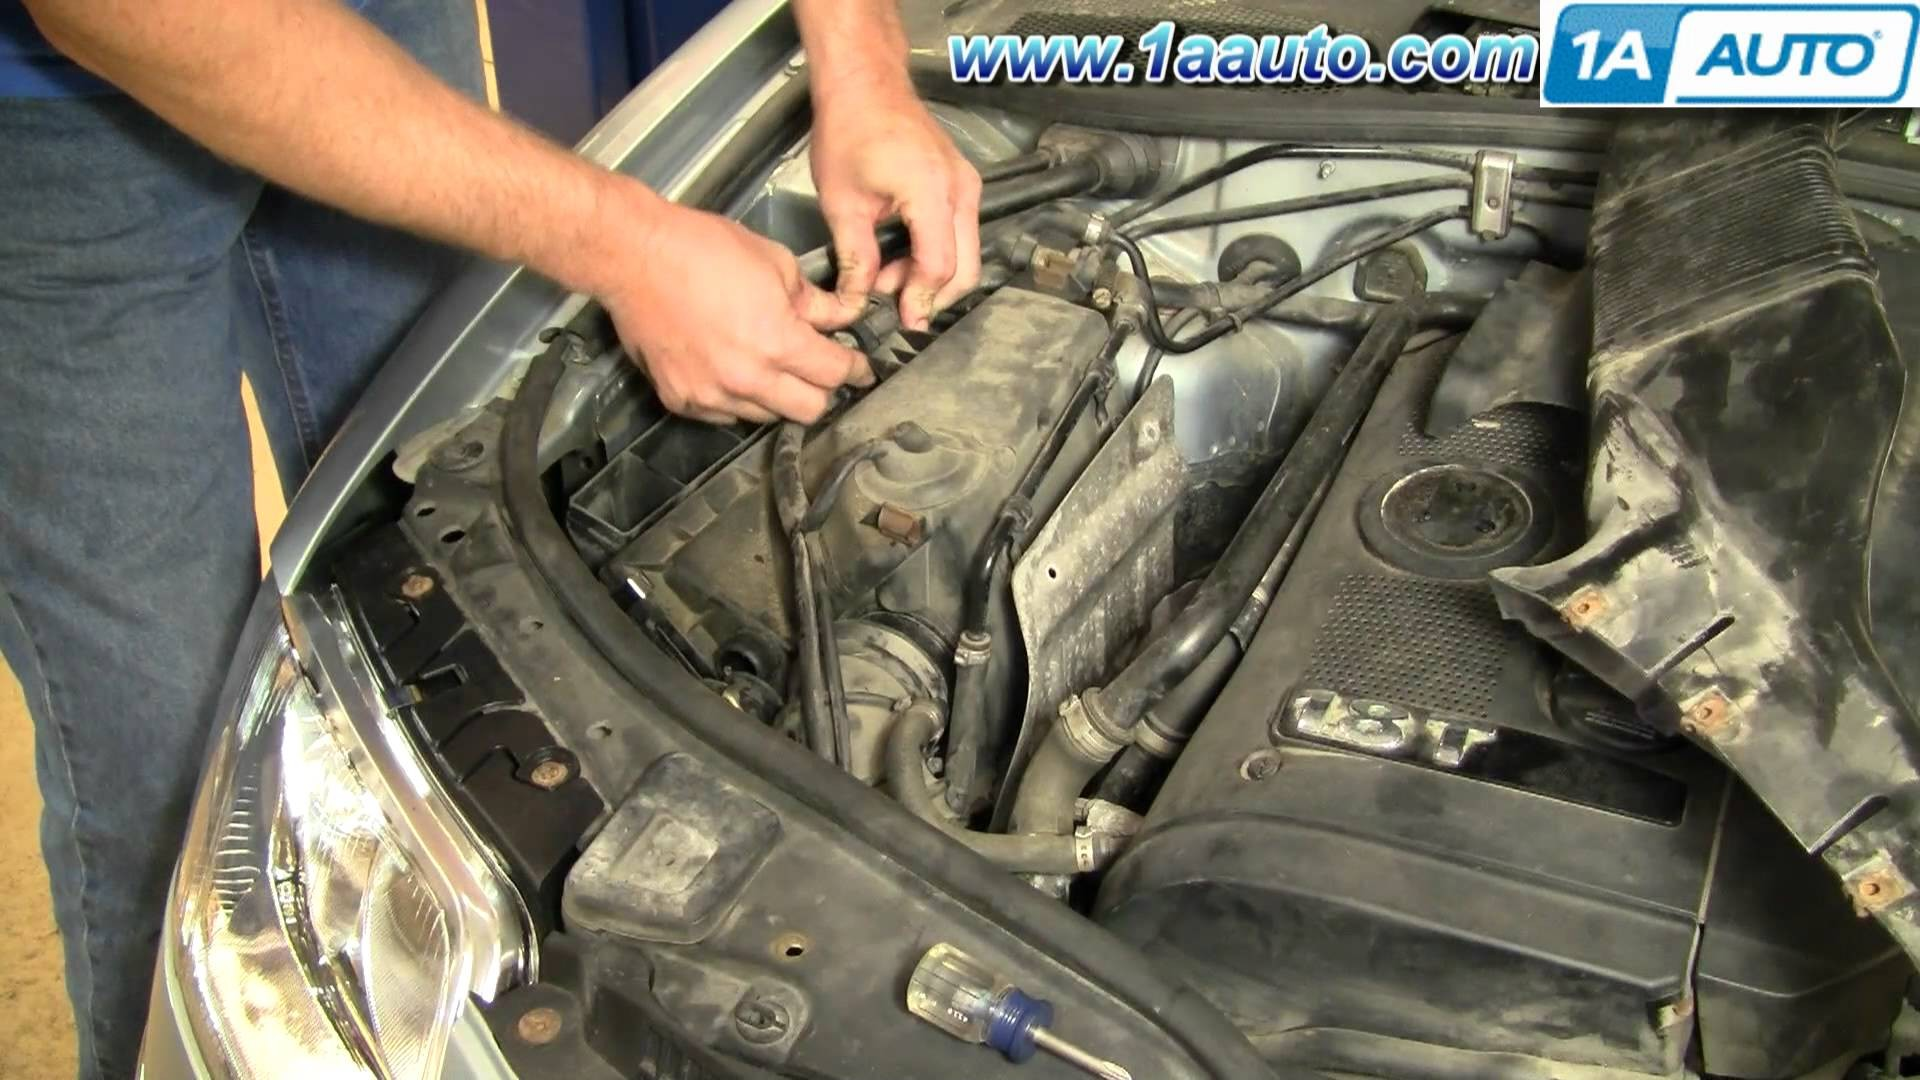 Vw 1 8 T Engine Diagram How to Install Replace Engine Air Filter Volkswagen Passat 02 05 Of Vw 1 8 T Engine Diagram